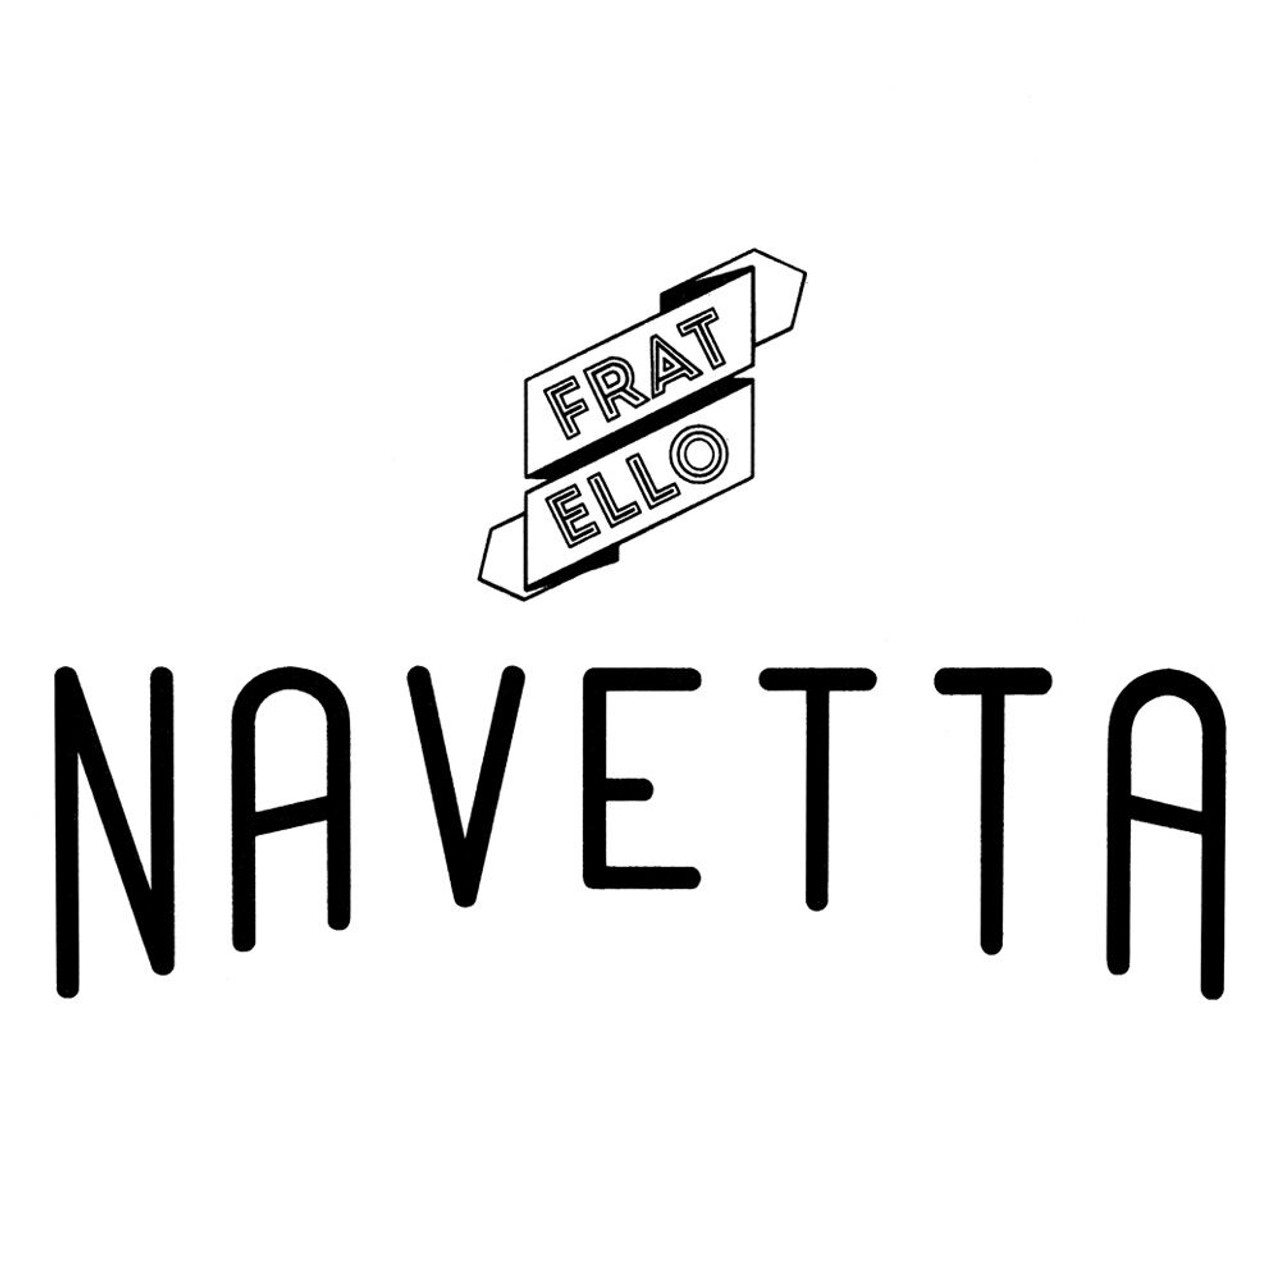 Fratello Navetta Inverso Robusto Cigars - 5.5 x 54 (Box of 20)